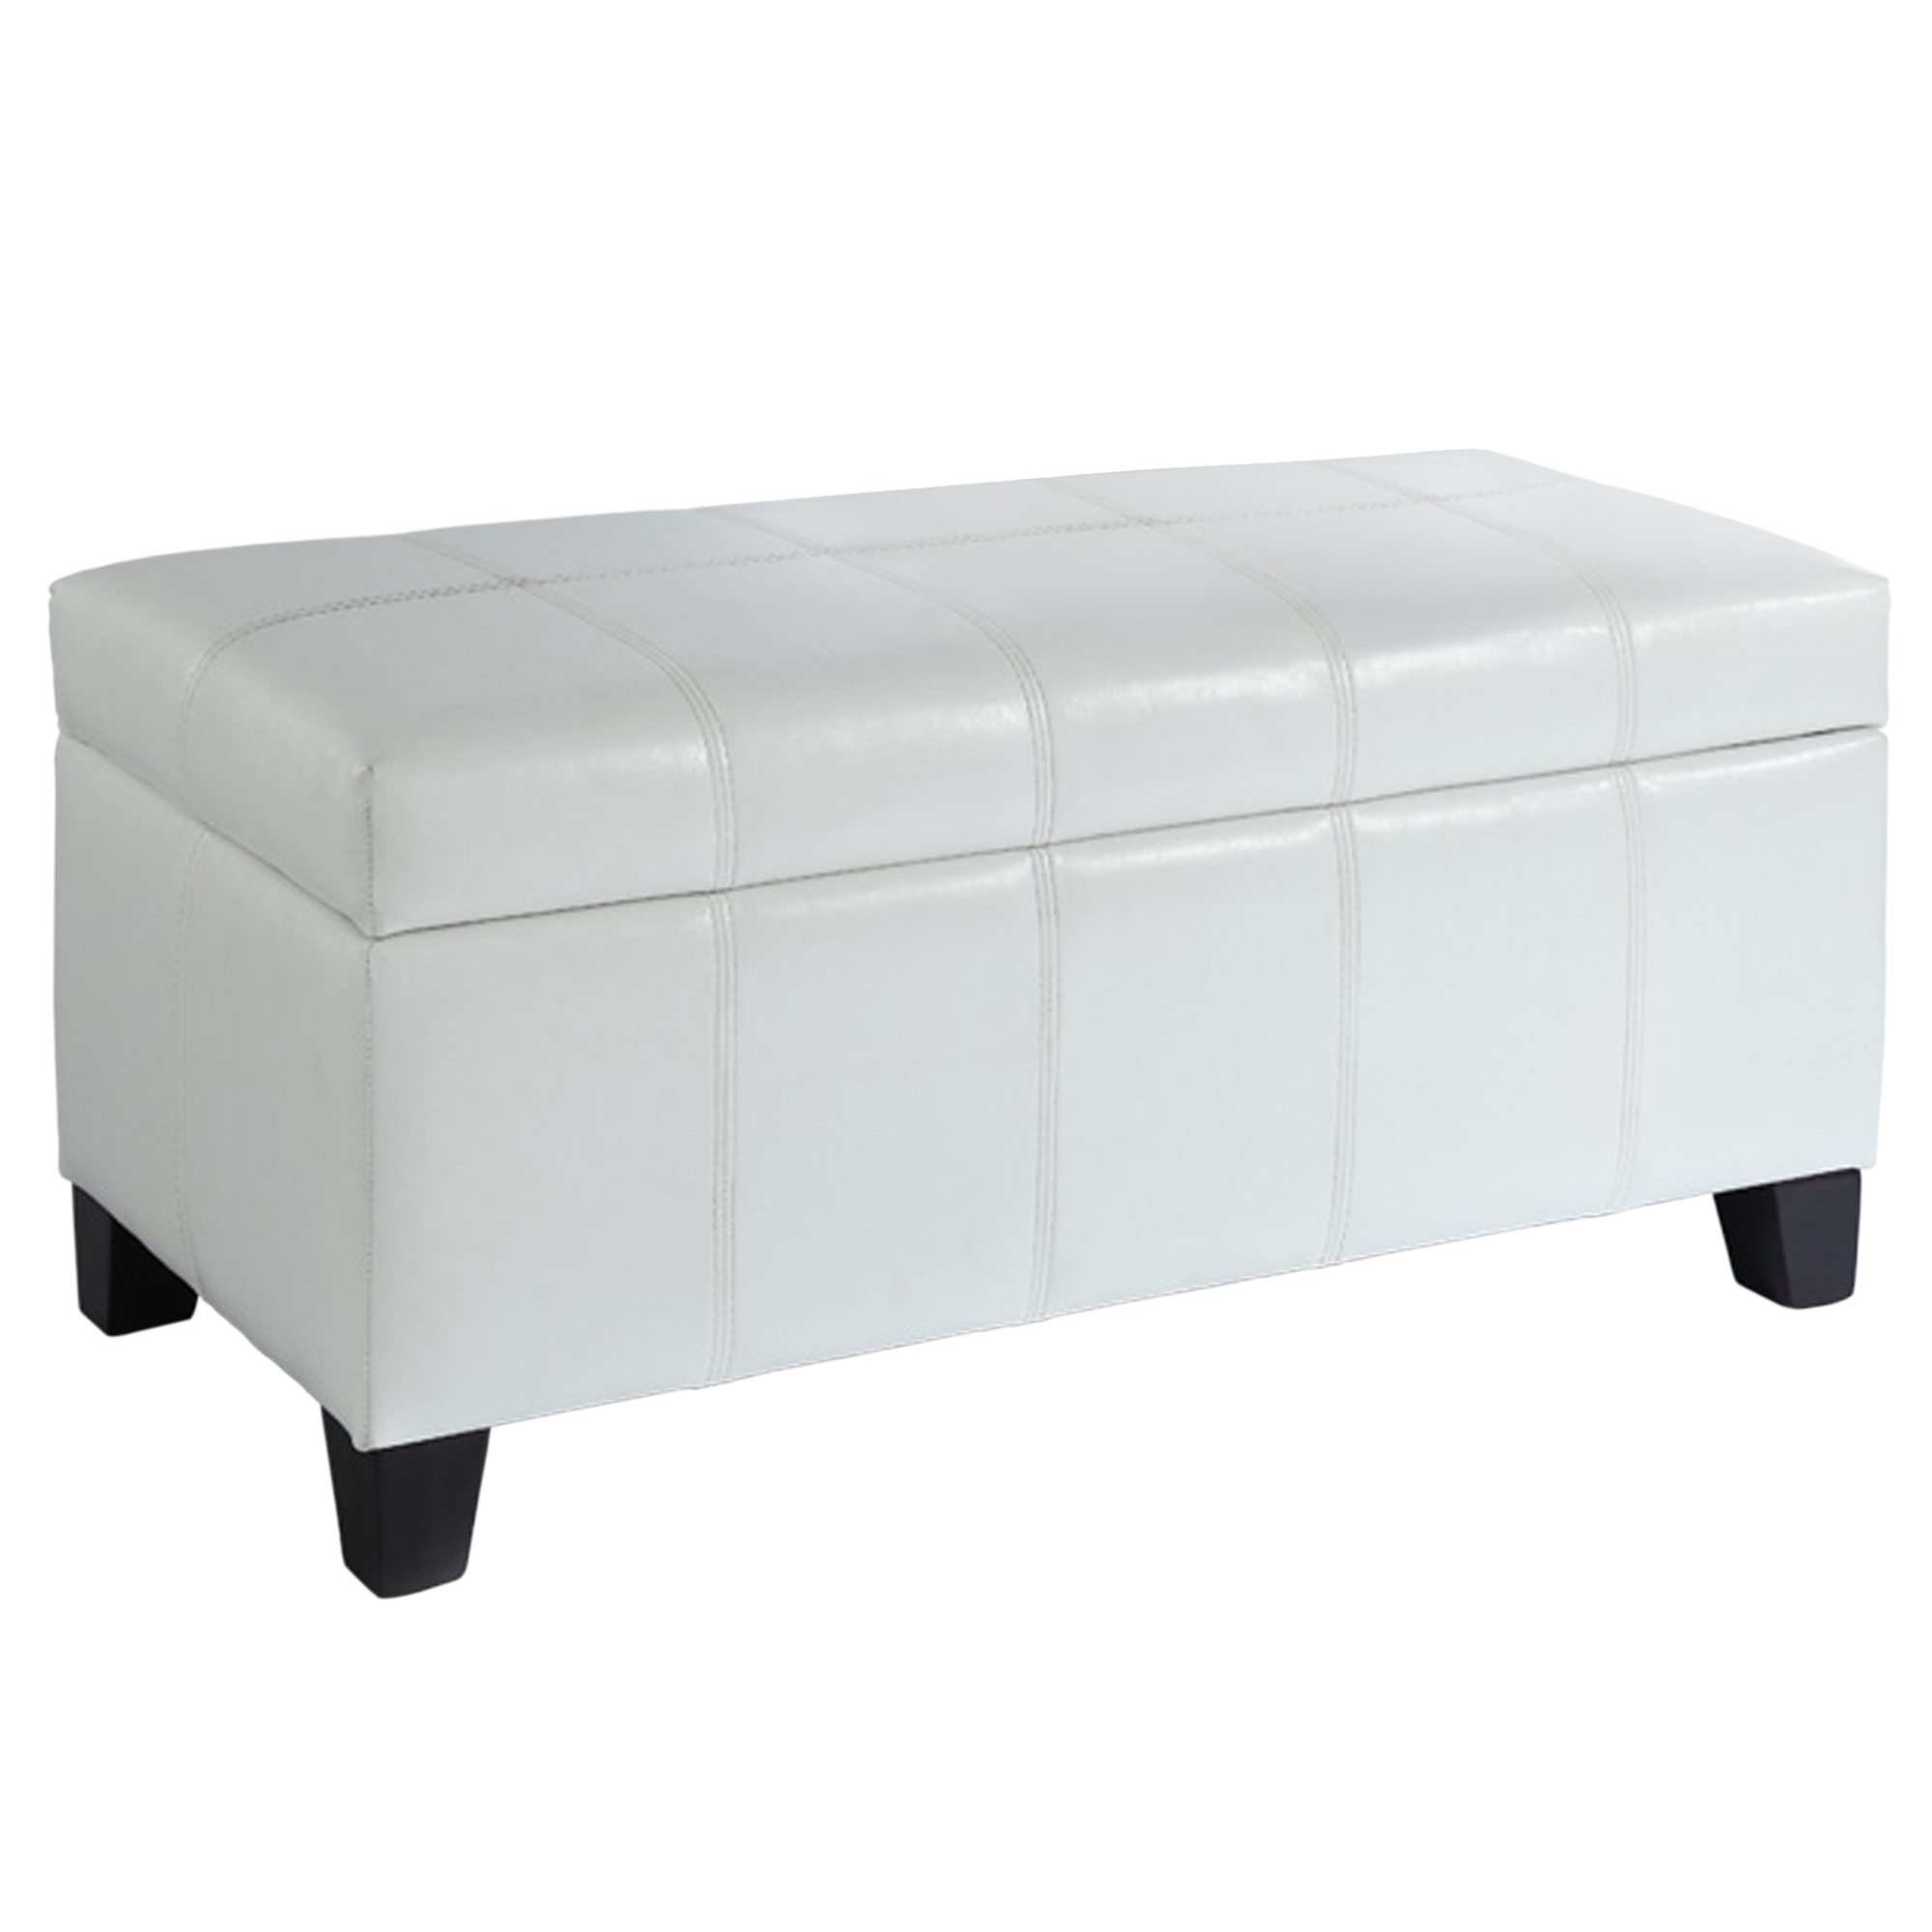 Modern Faux Leather Rectangular Storage Ottoman in White